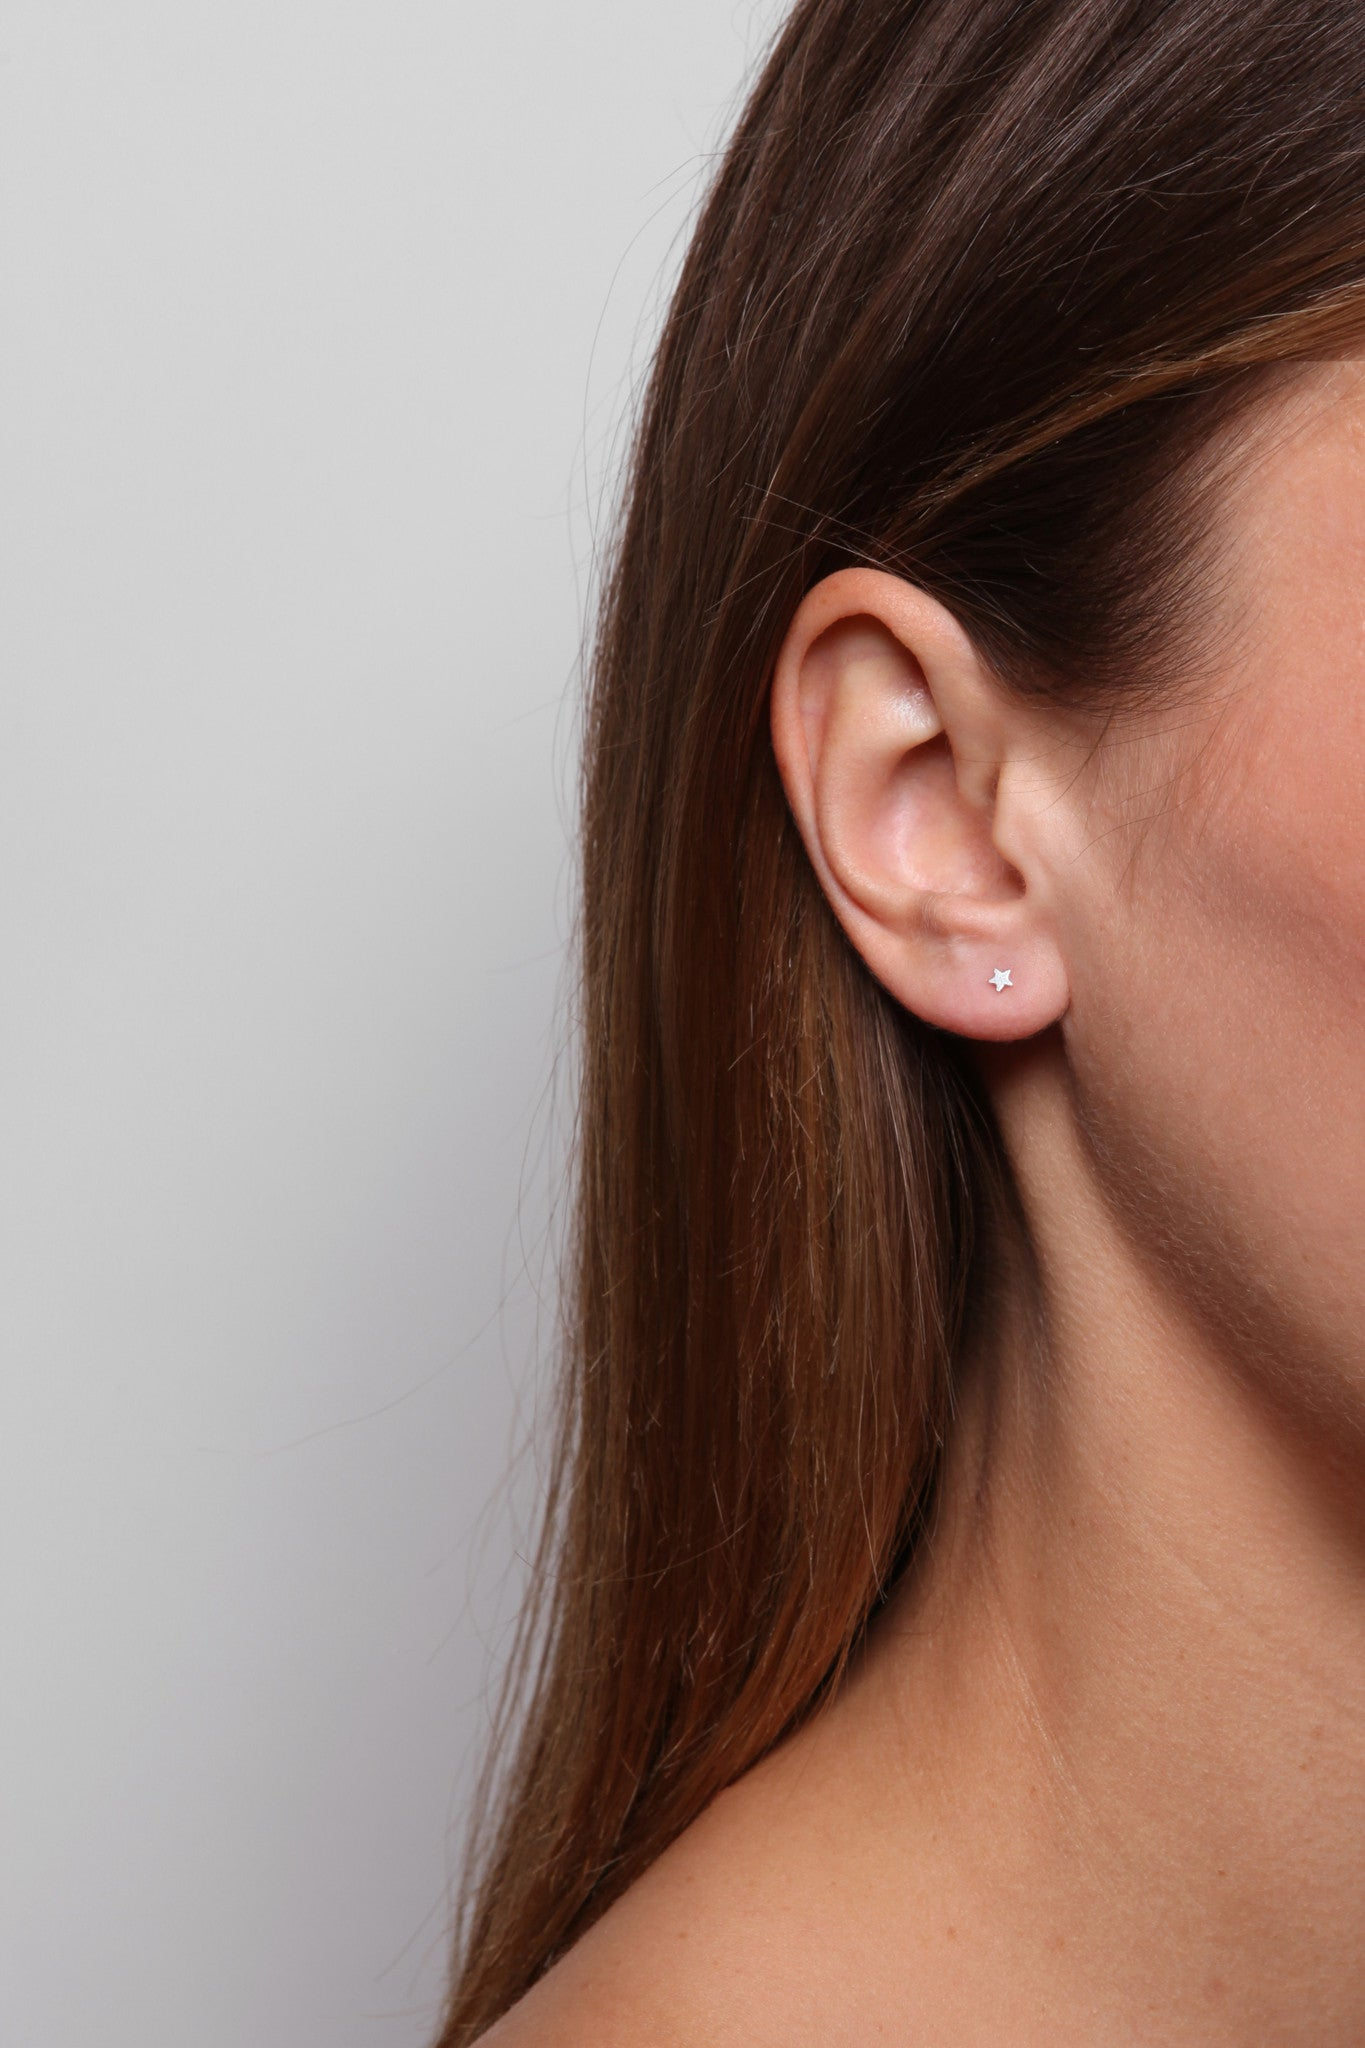 LITTLE STAR EAR STUD